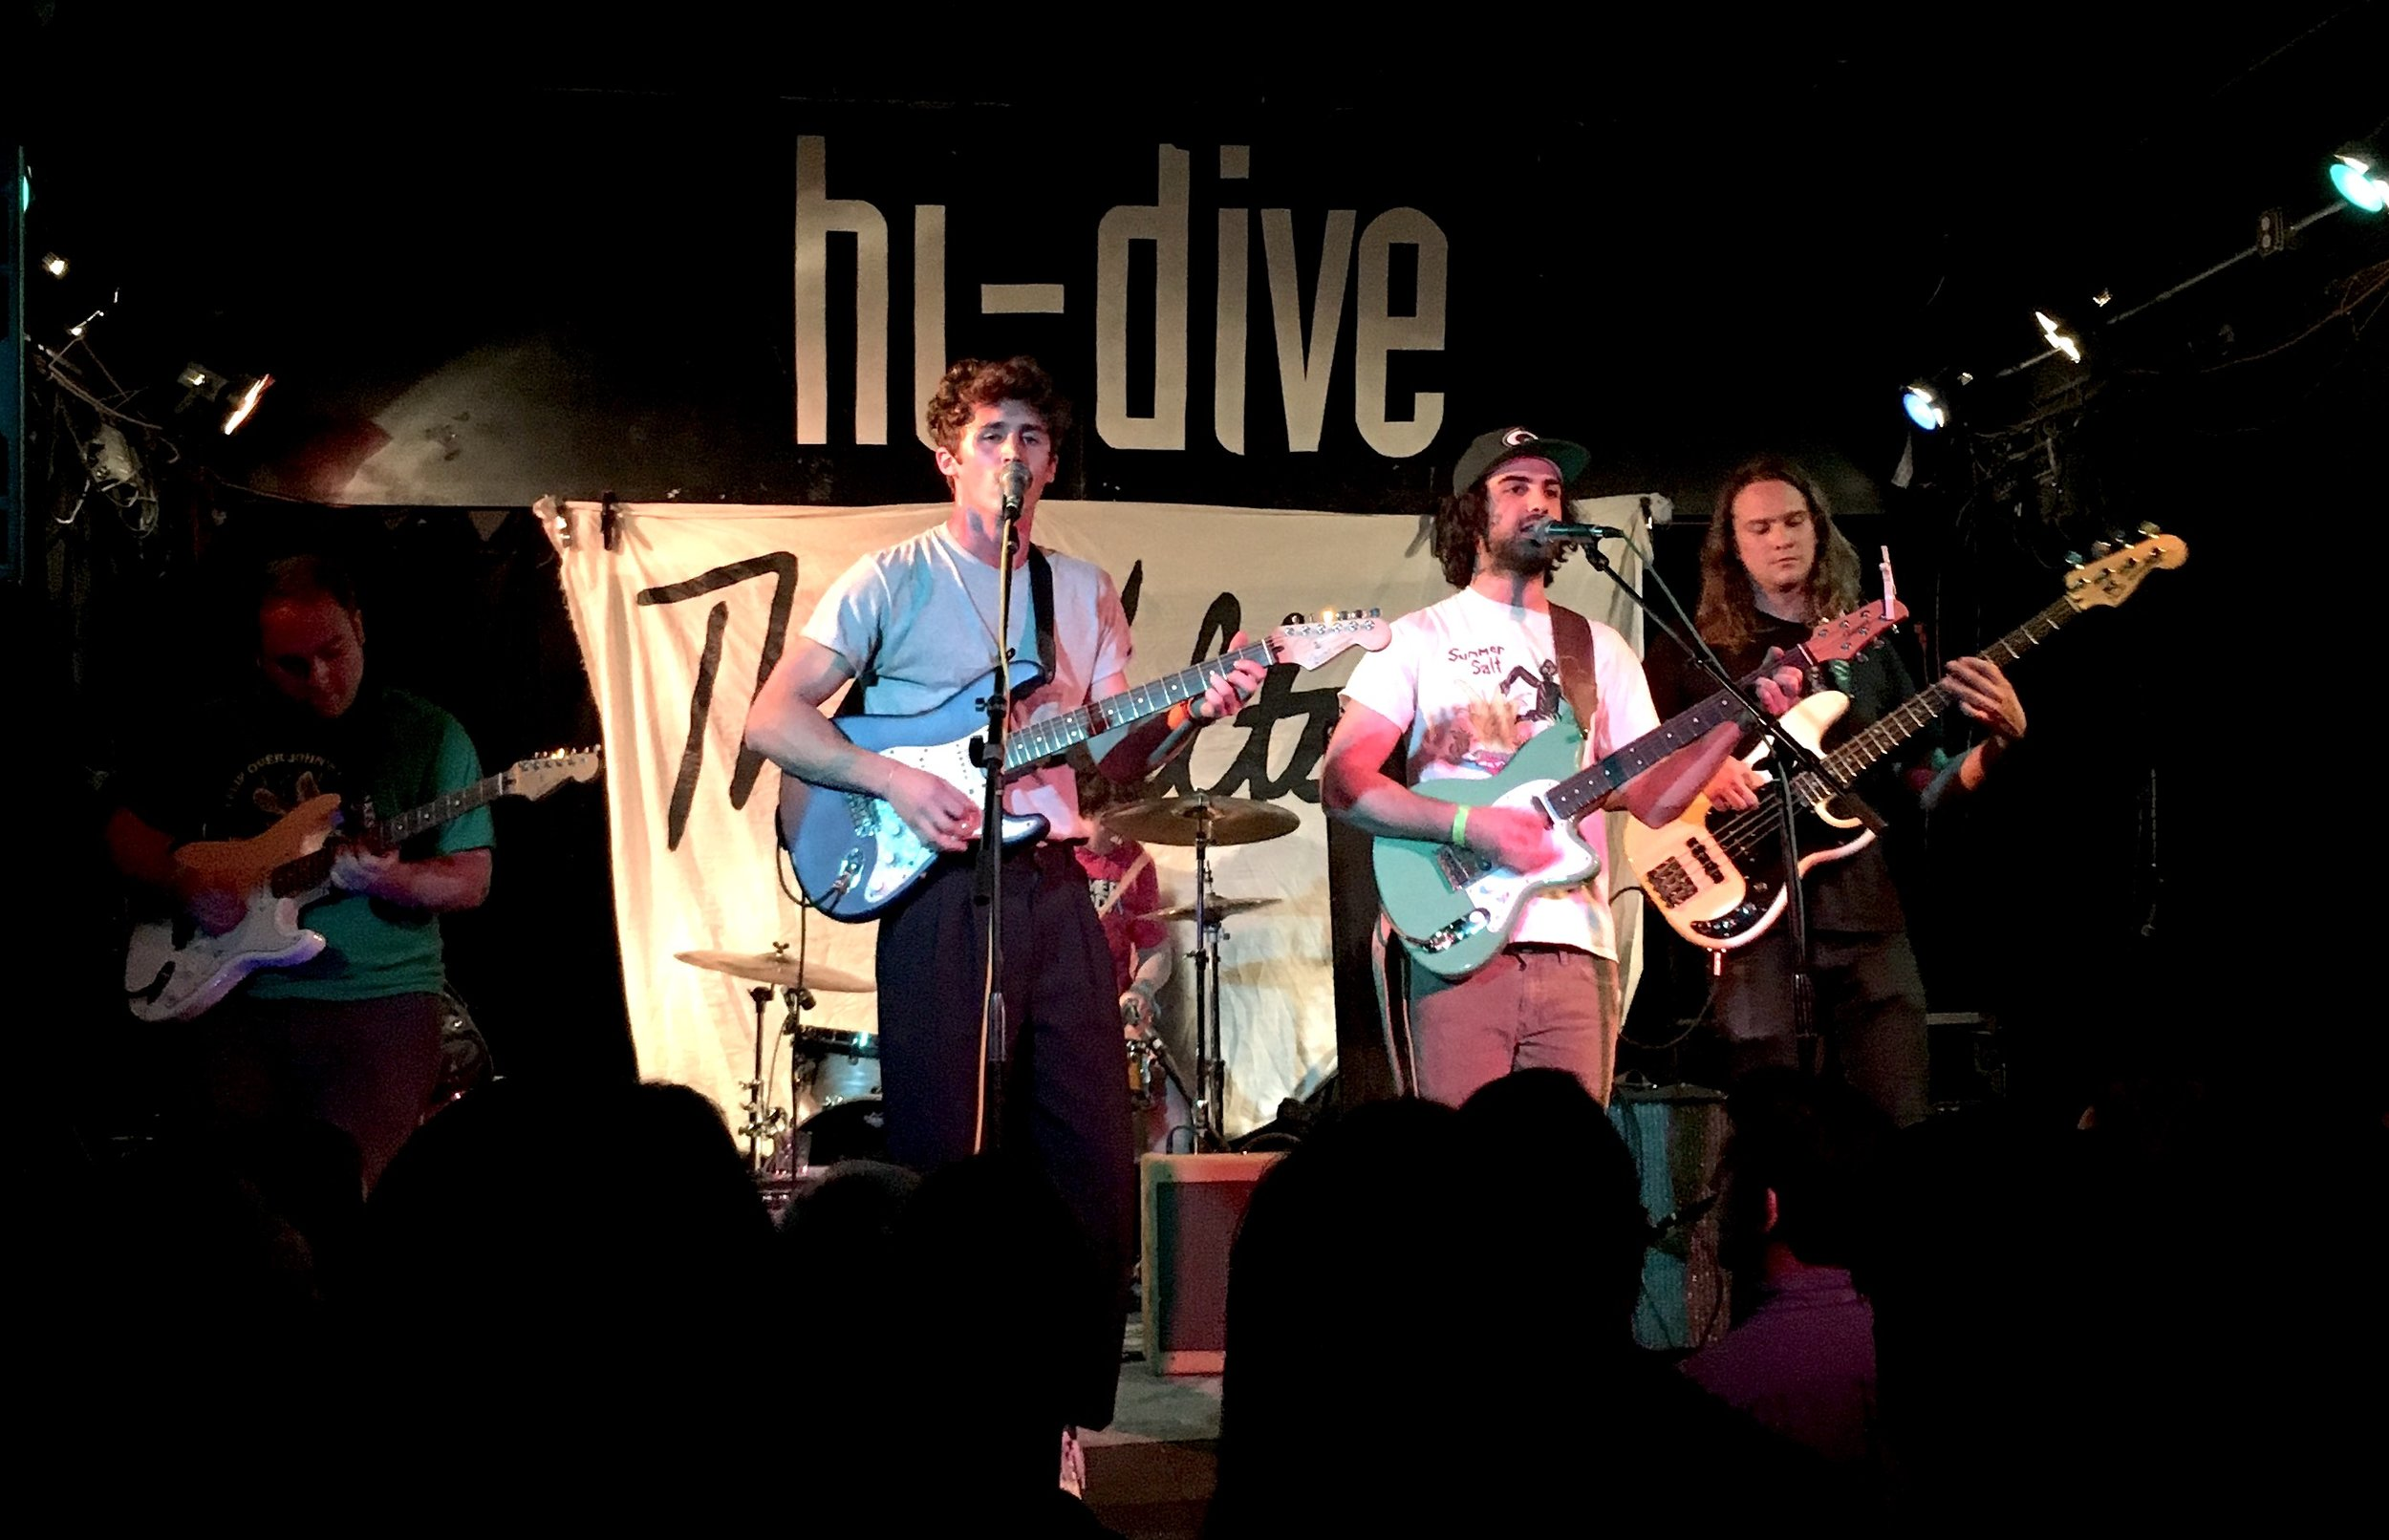 The Walters performing New Shoes during their Hi-dive set.  Photo: Jocelyn Rockhold